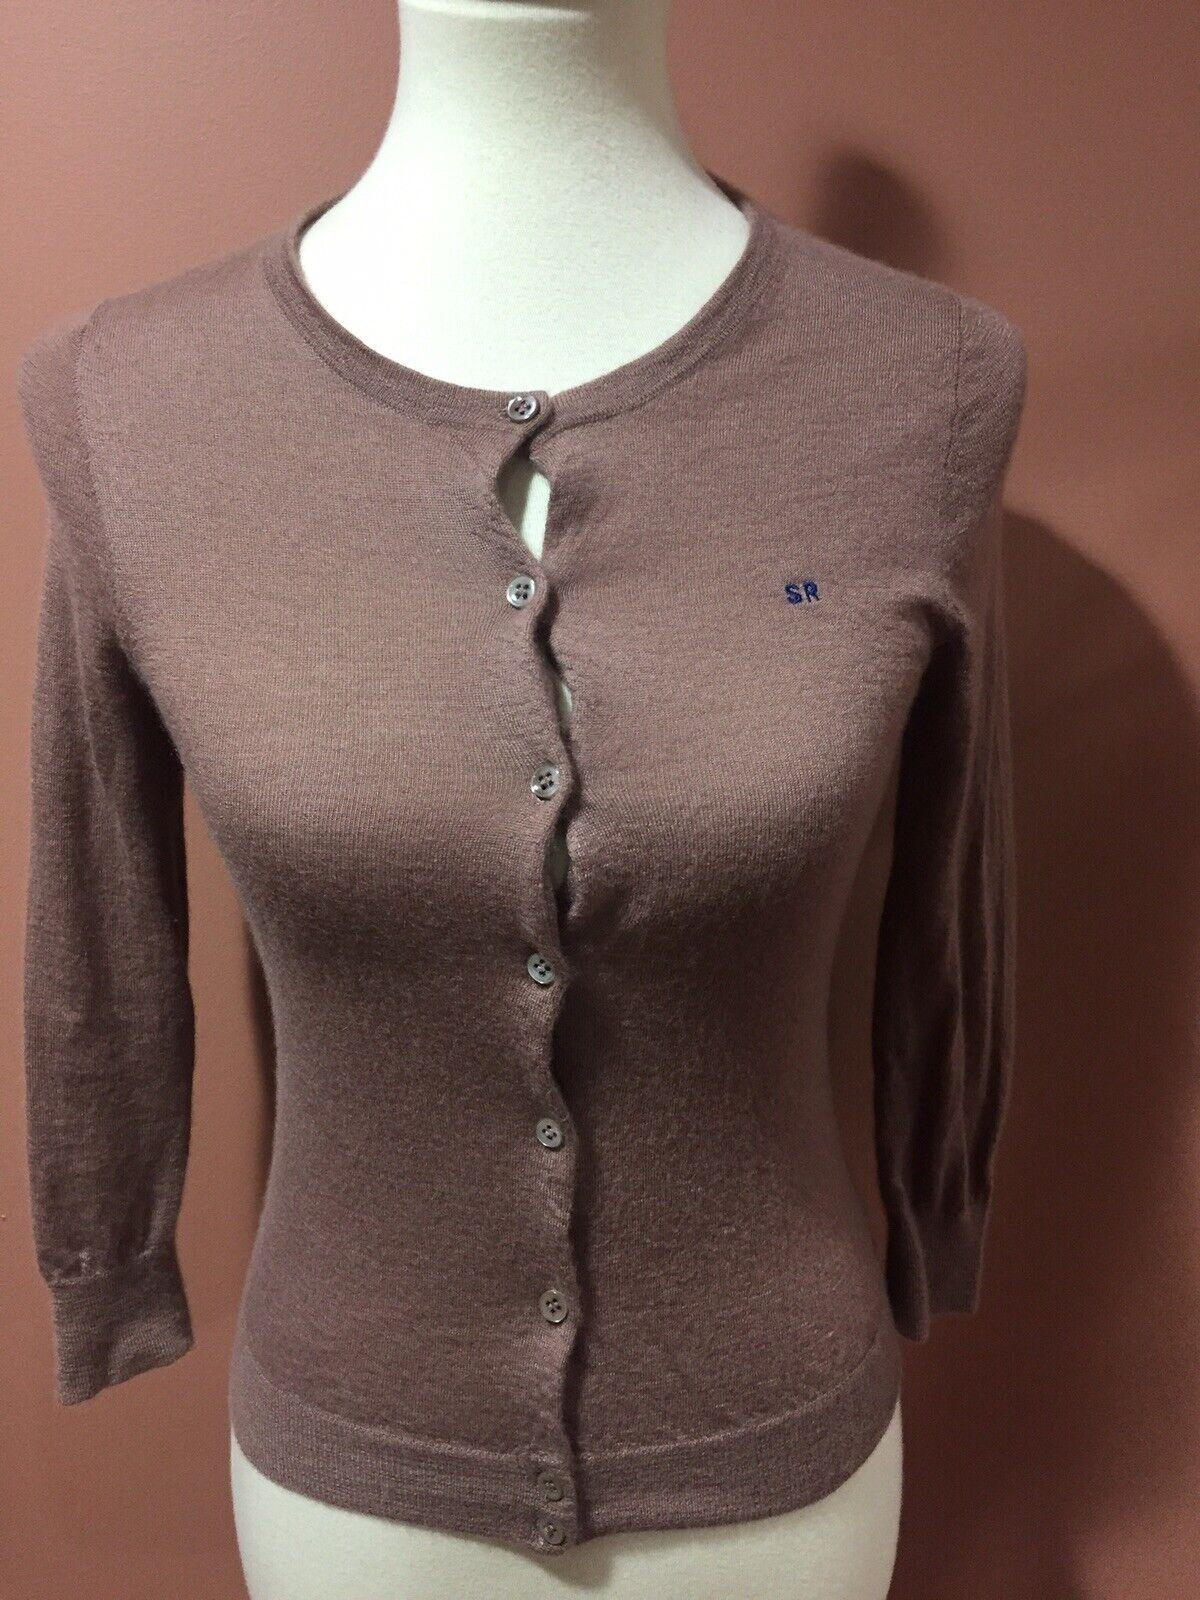 J Crew Collection SR Italian Cashmere Brown Cardigan Knit Top Size S